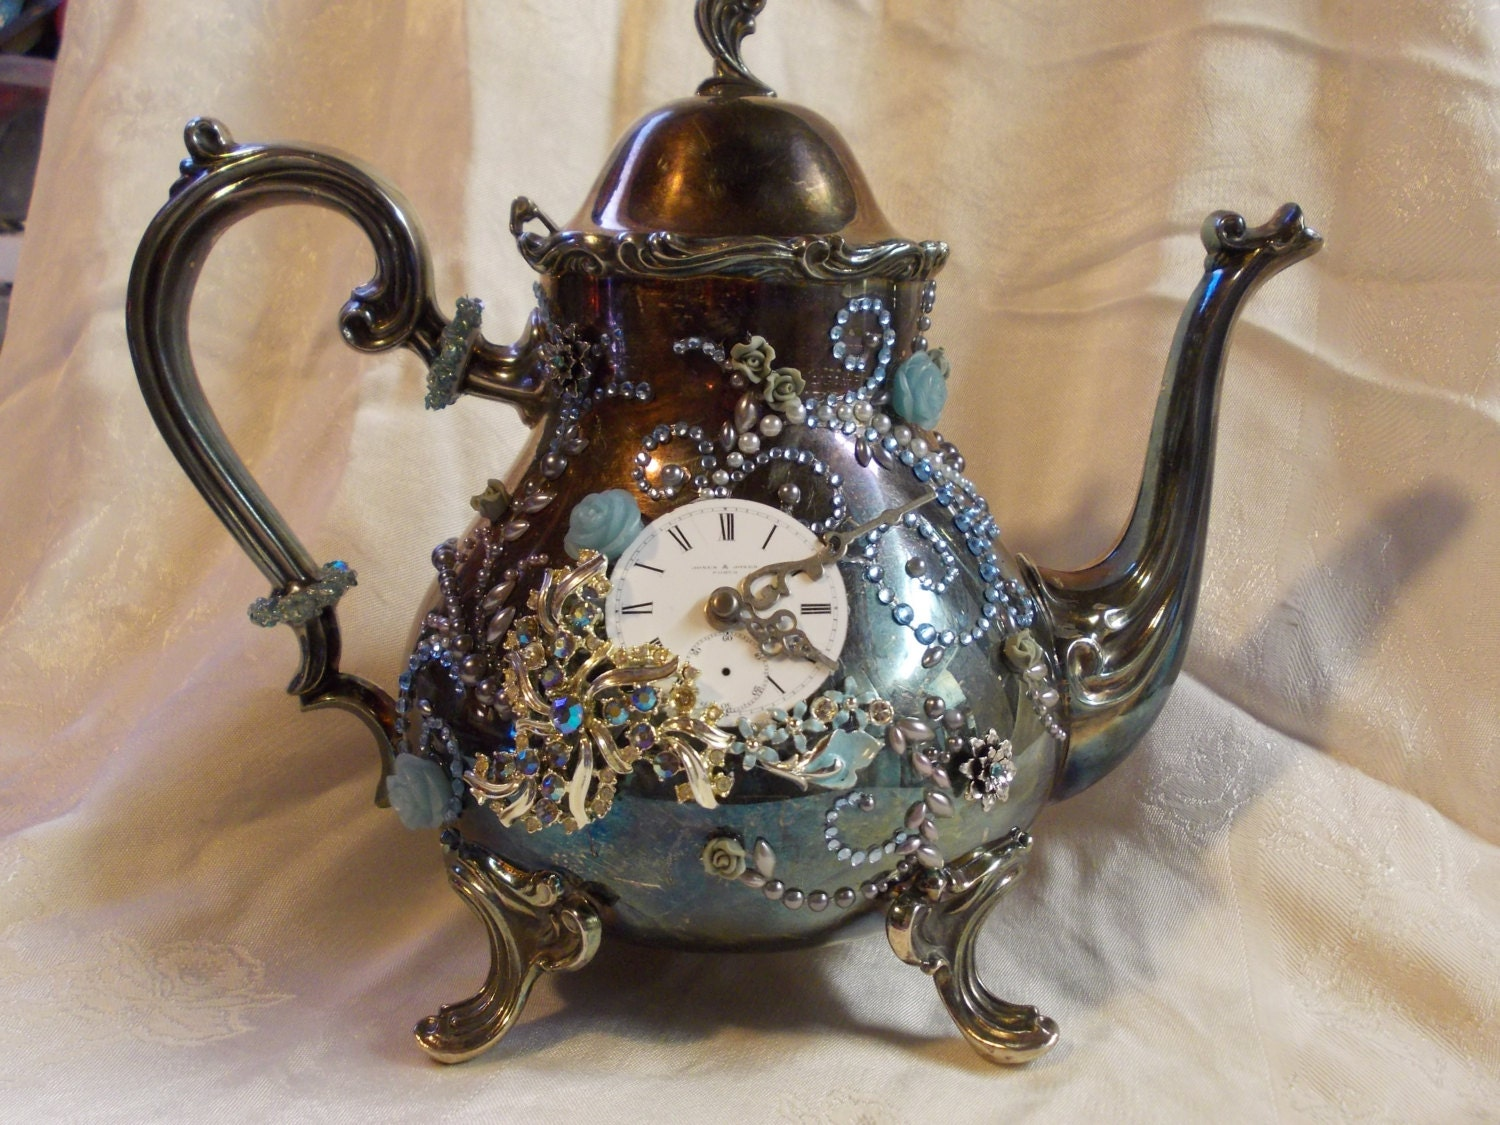 Taking Tea With The Queen- Steampunk Jeweled Teapot